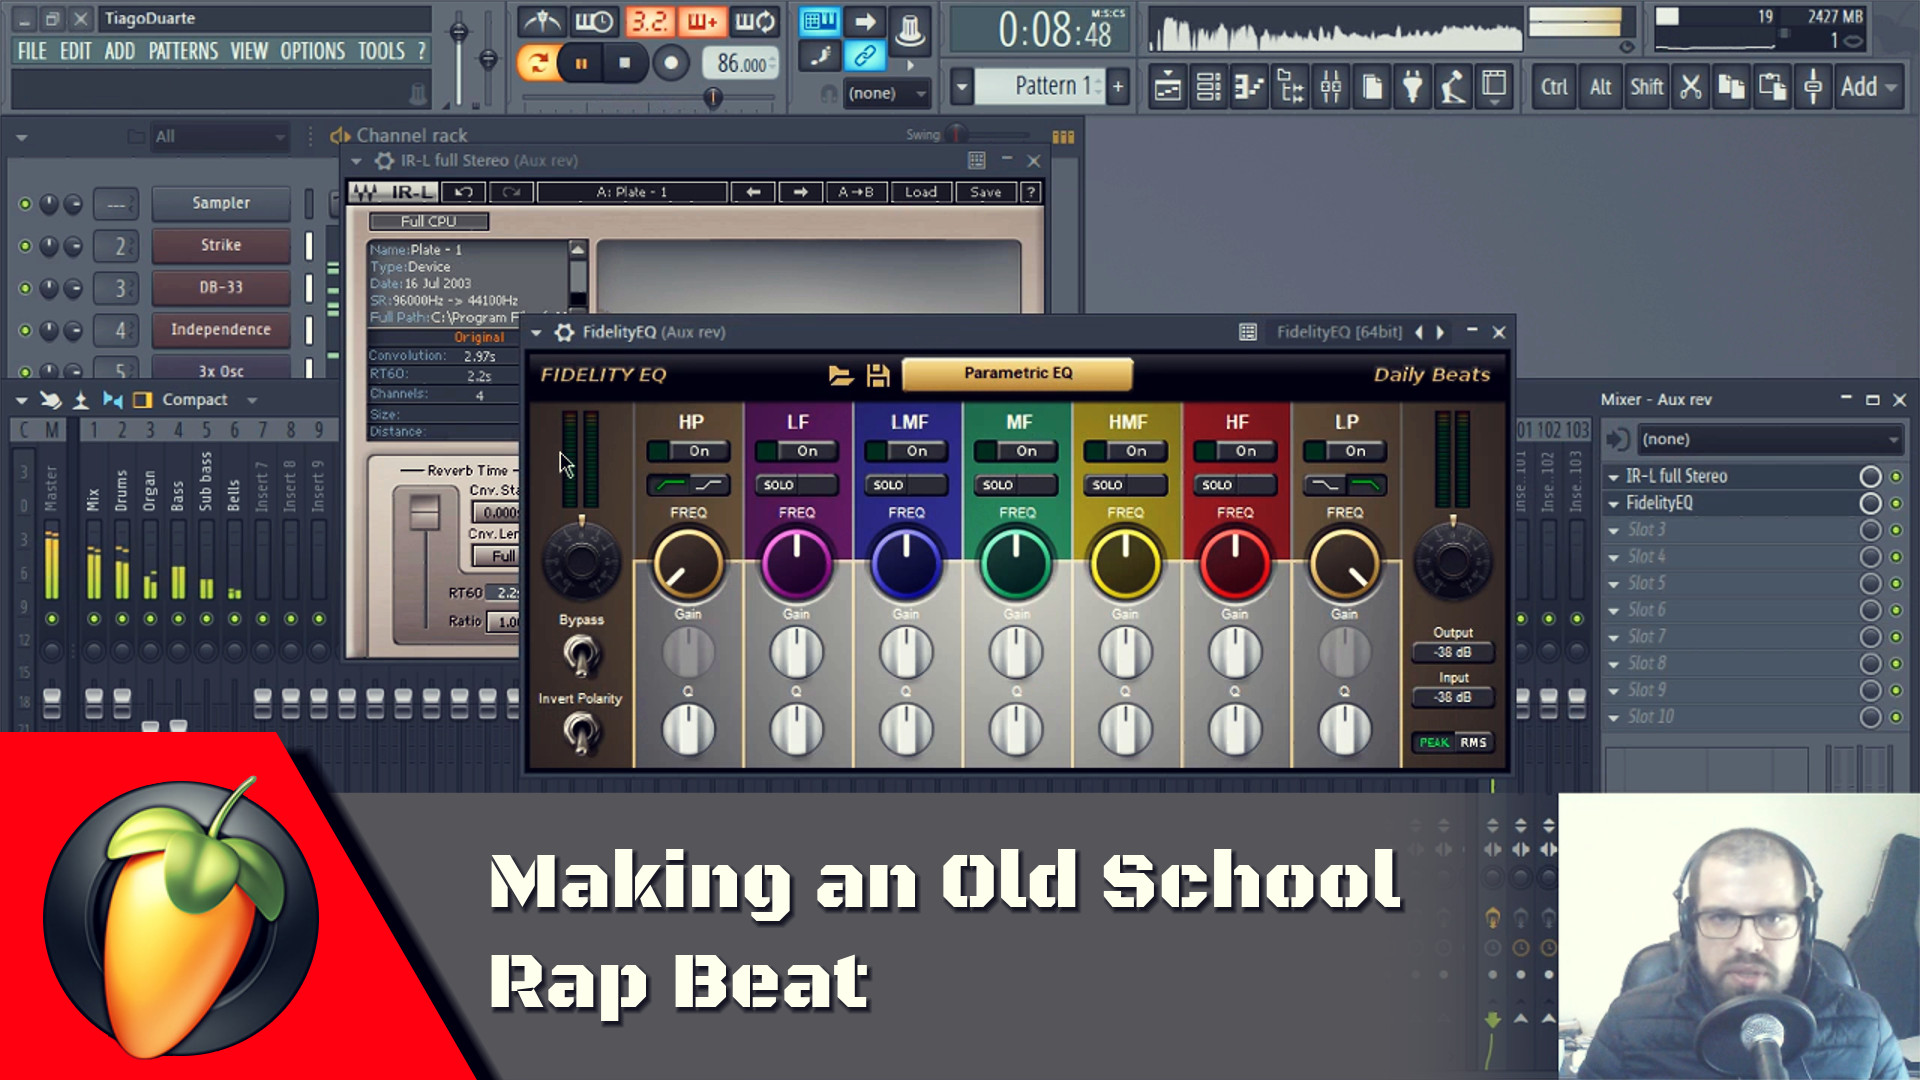 Making an Old School Rap Beat